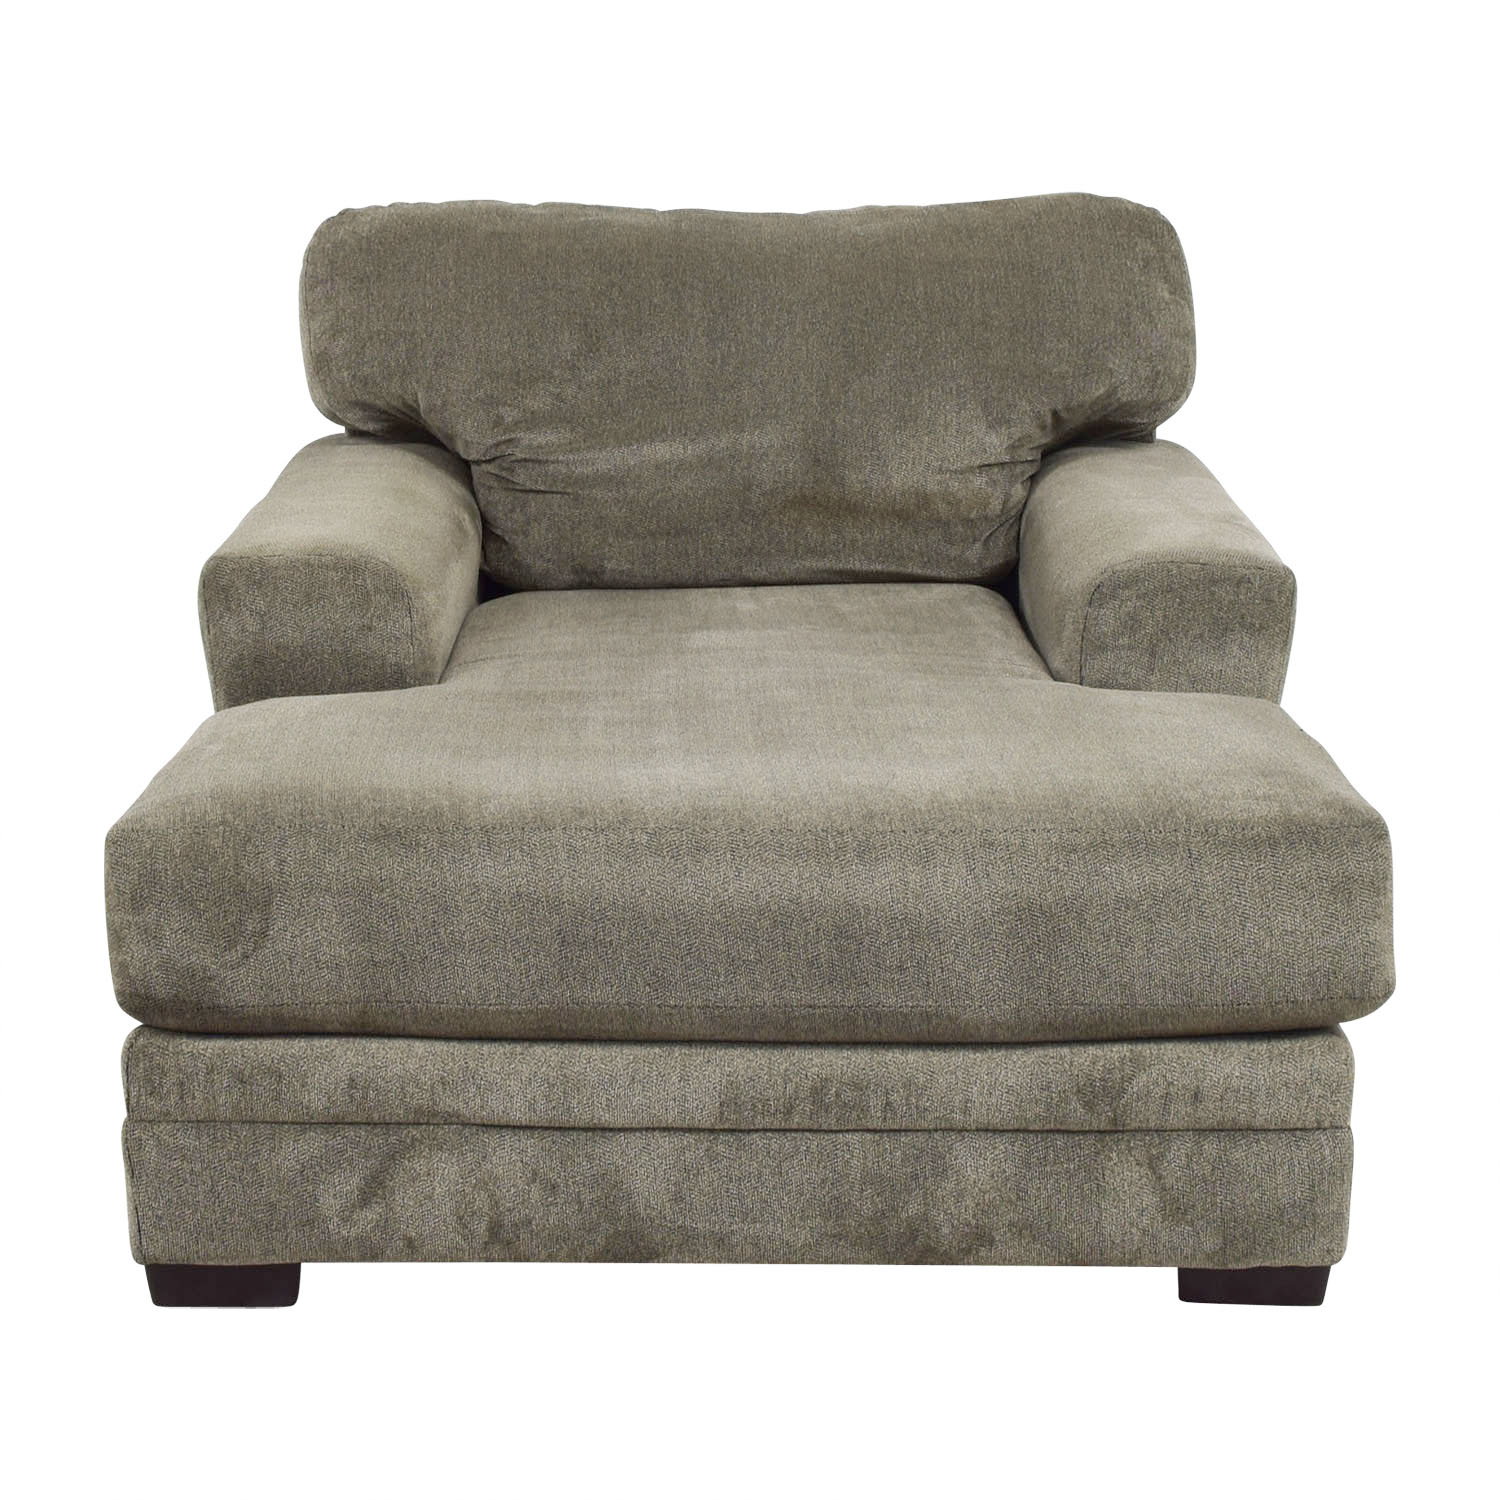 Bobs Furniture Bobs Furniture Grey Chaise Lounge discount